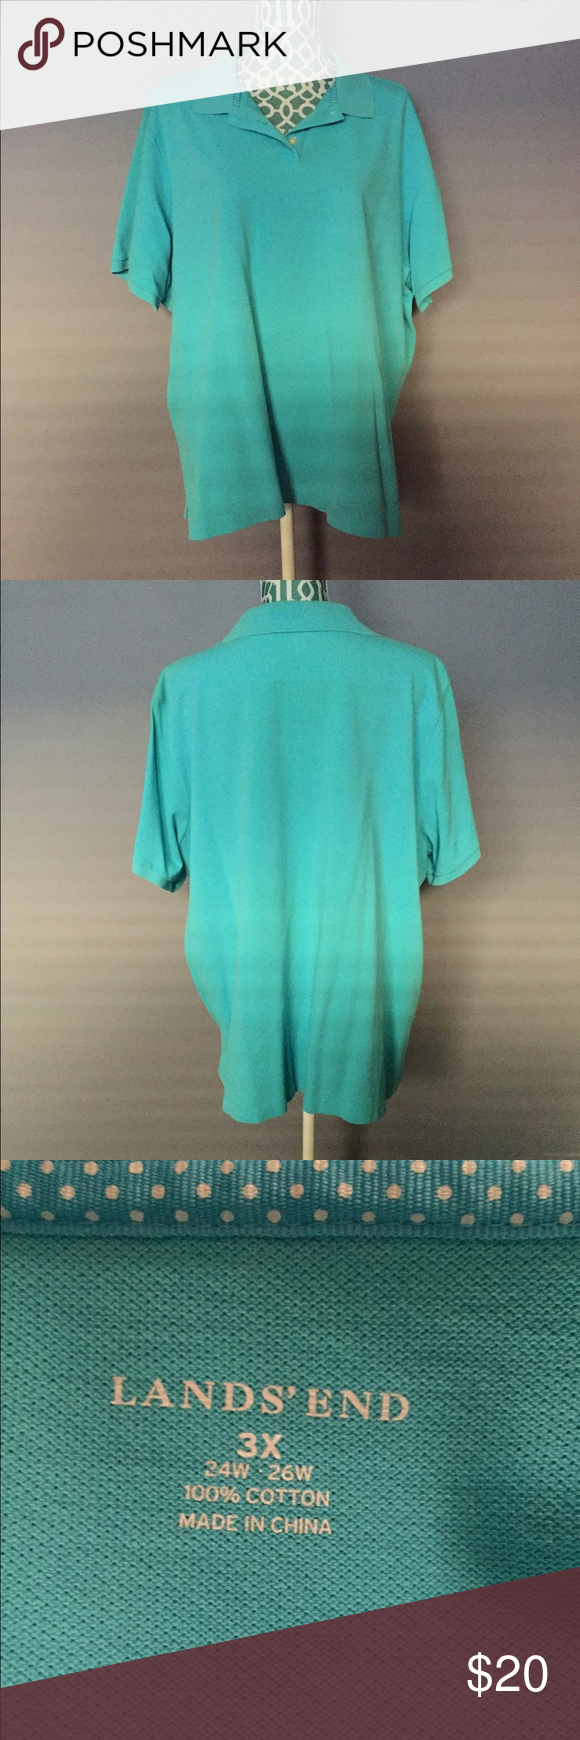 Lands' End Bright Turquoise Polo Shirt -Excellent condition  -Bright & vibrant turquoise color -Perfect for work -If you like this one, I have a pink and light coral one exactly like it!!  -Shoulder to hem: 27 inches -Bust: 56 inches -No trades, pp or lowballs, but feel free to make a reasonable offer! Lands' End Tops